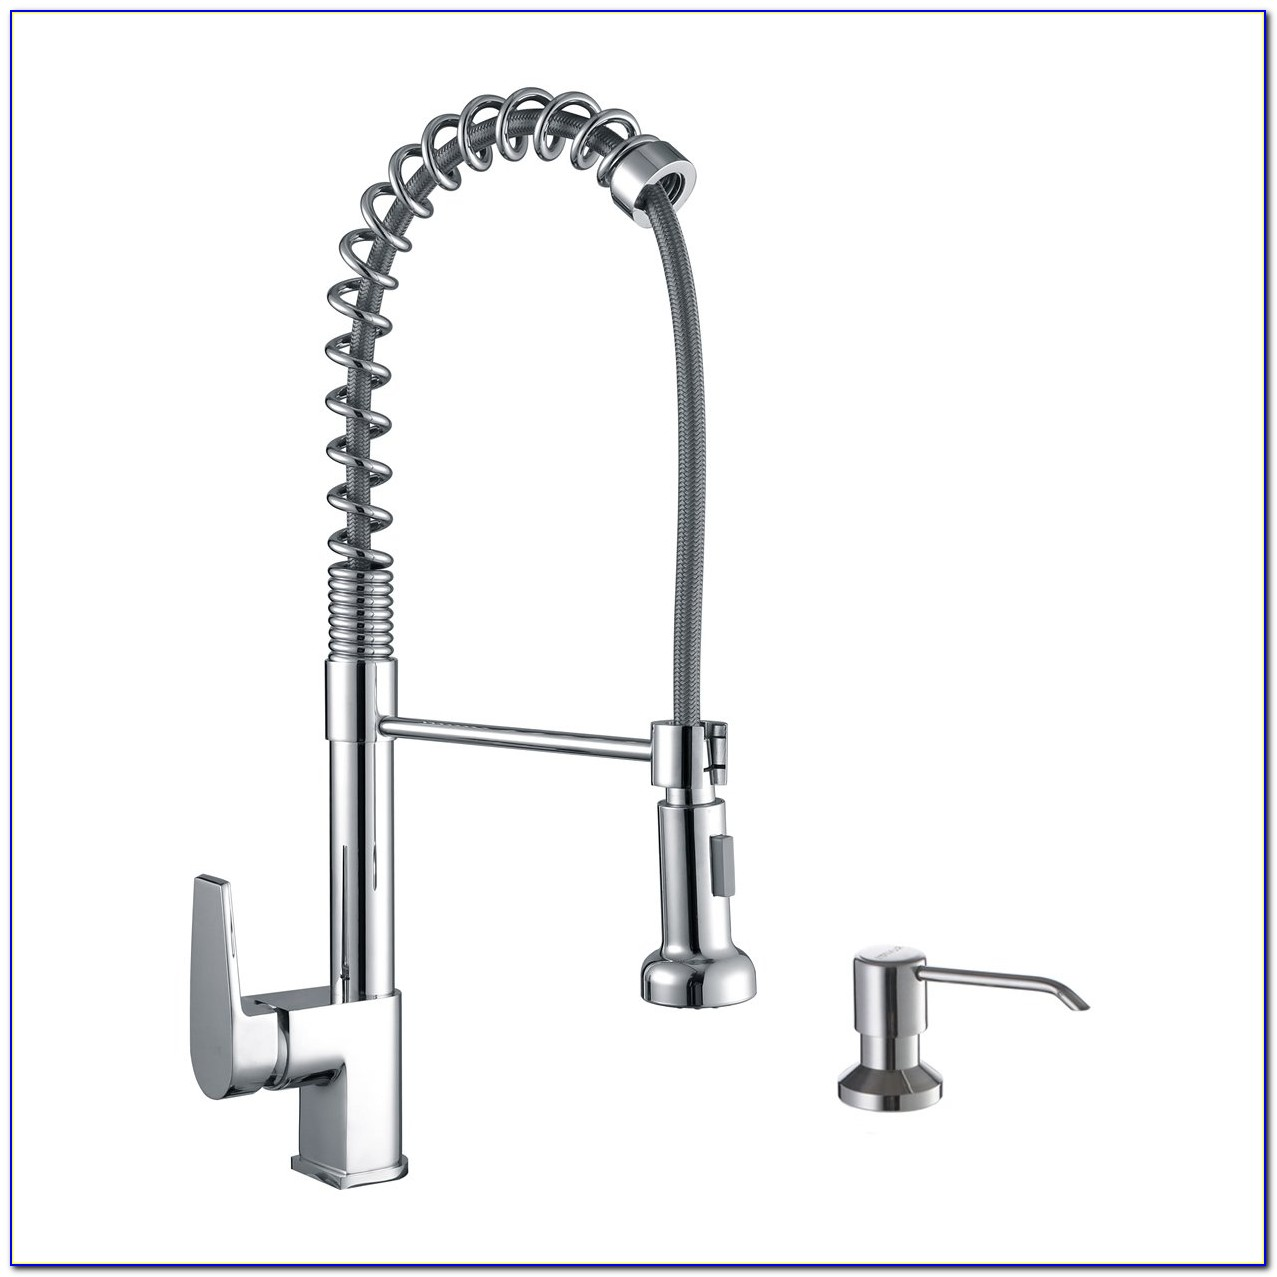 Commercial Kitchen Sink Faucet With Sprayer